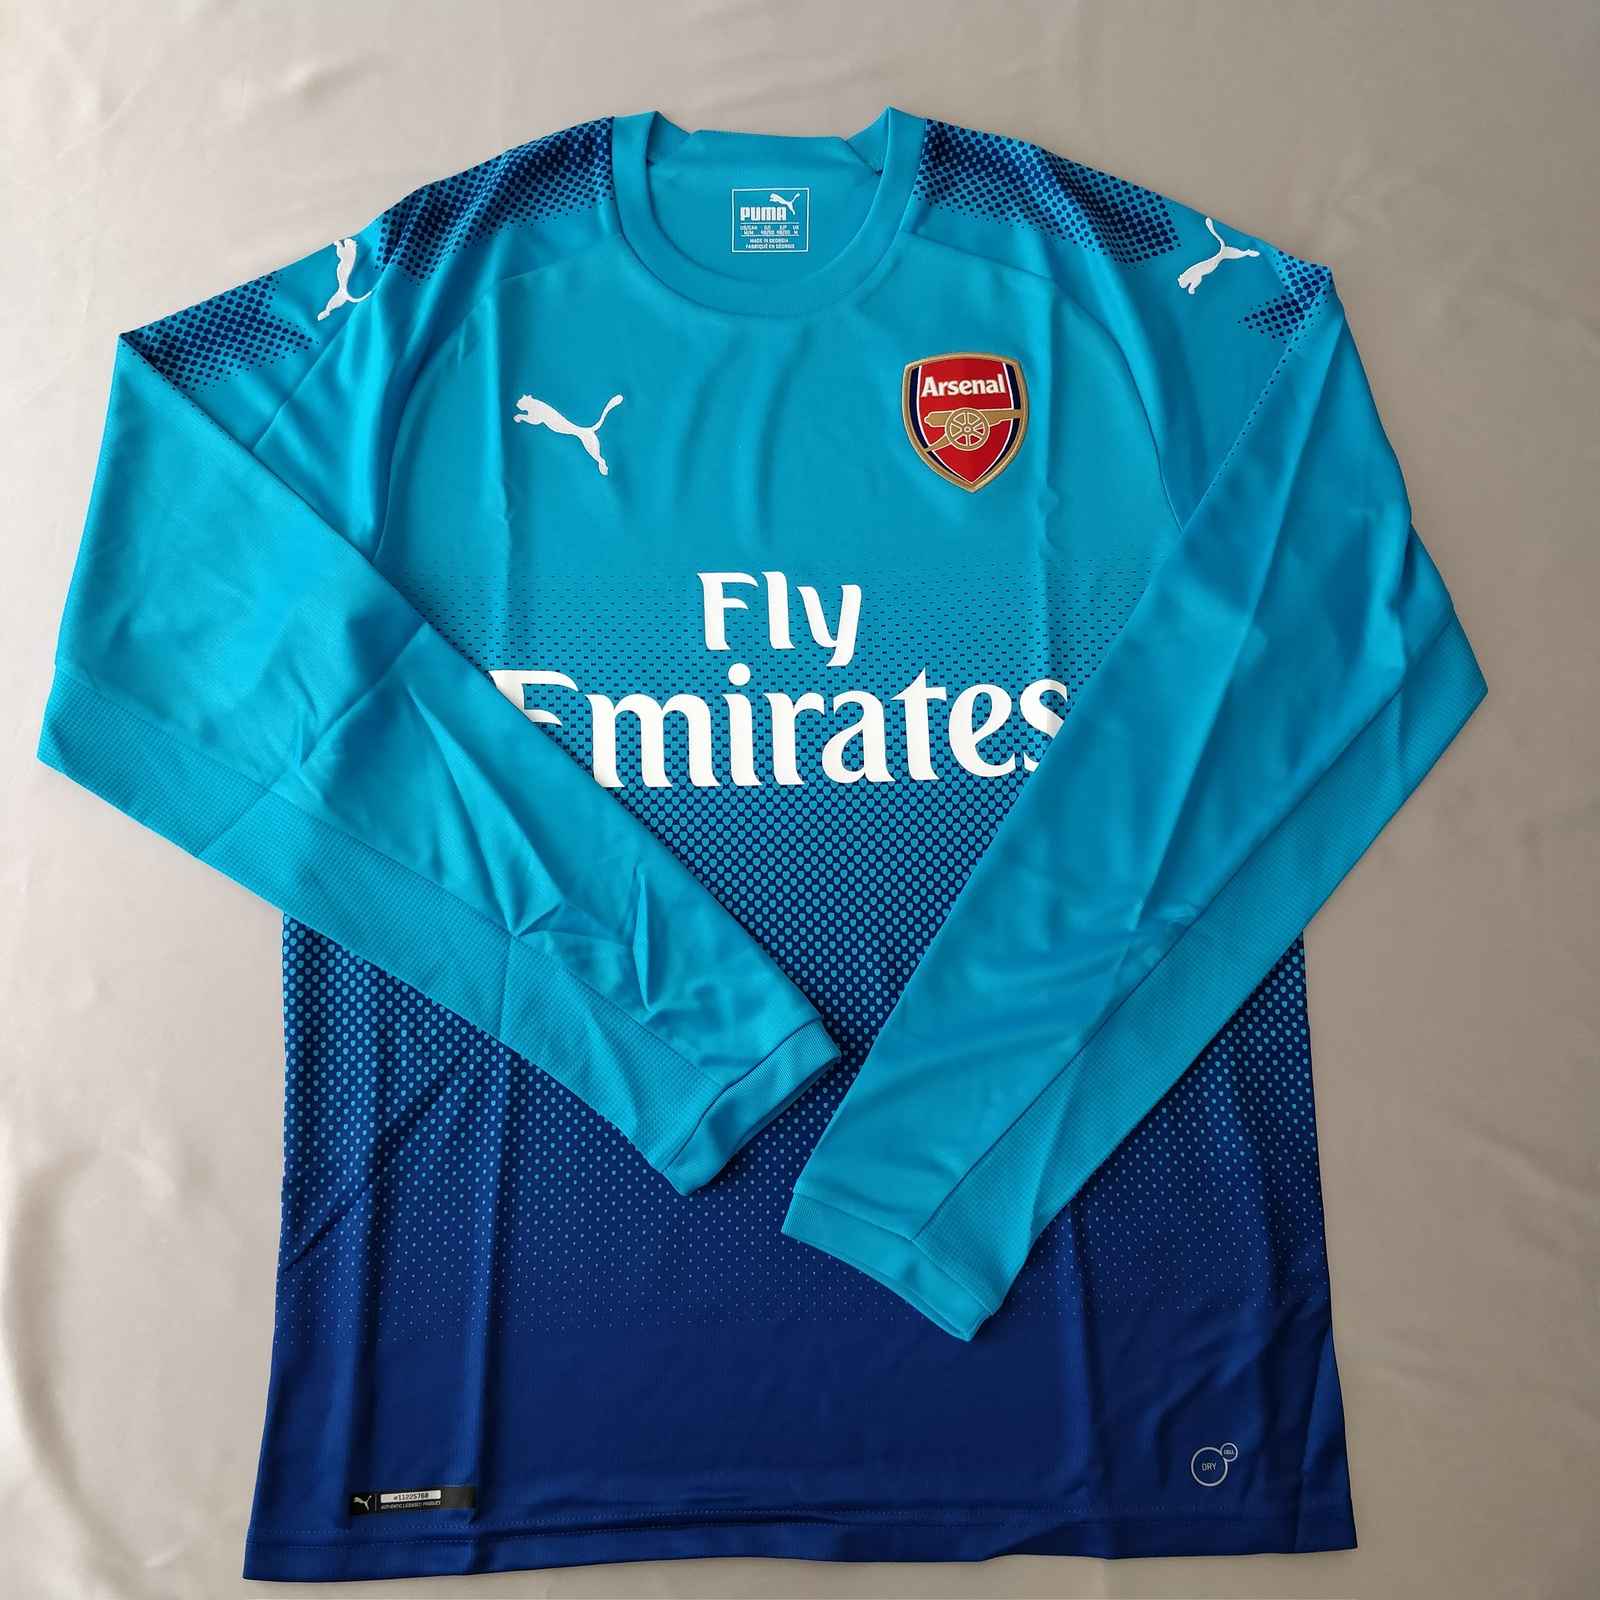 Primary image for Arsenal Away Jersey 2017/18 Puma Fans Version Blue %100 Original